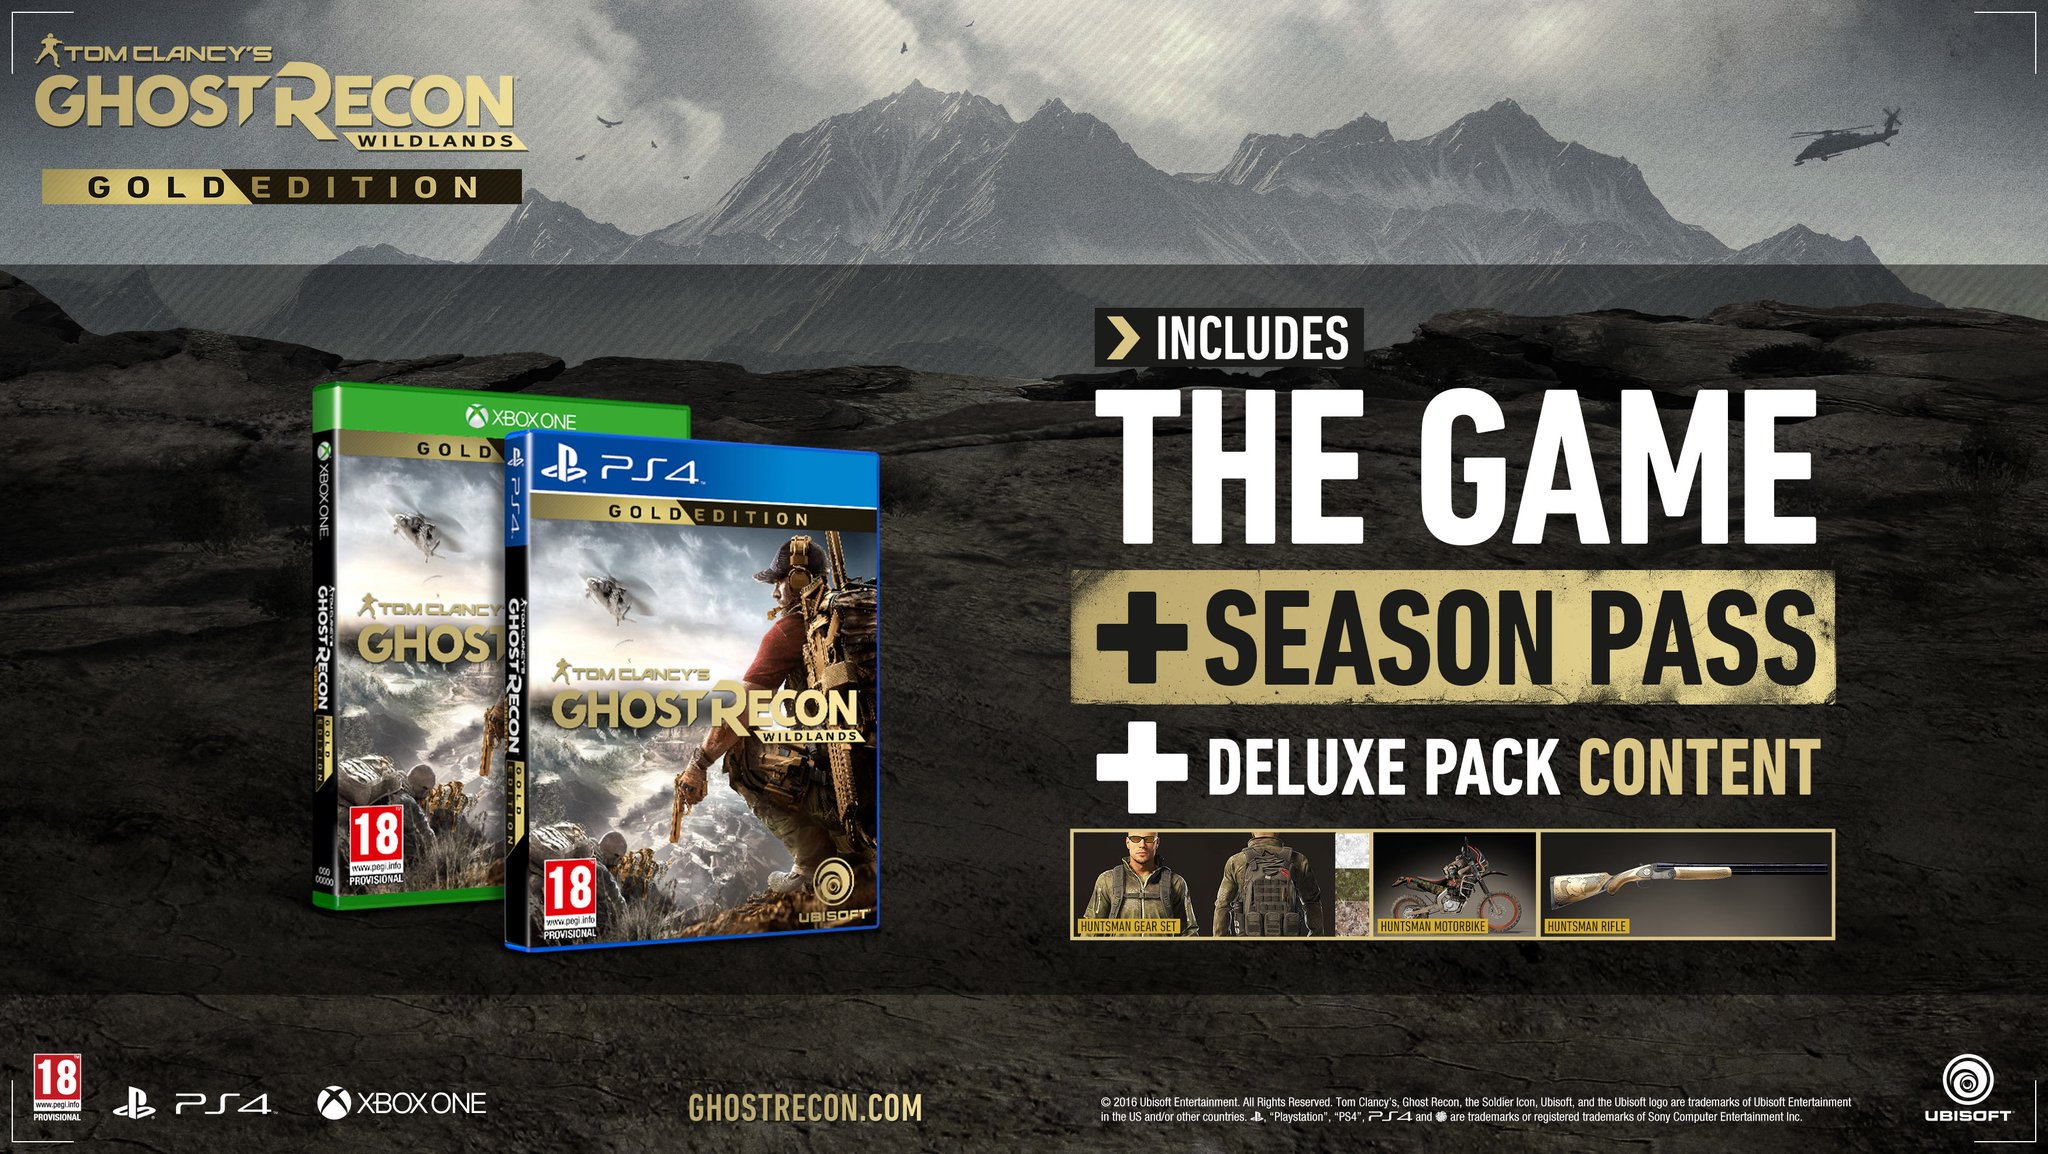 Ghost Recon: Wildlands 'We Are Ghosts' Trailer & Special Editions Revealed 3